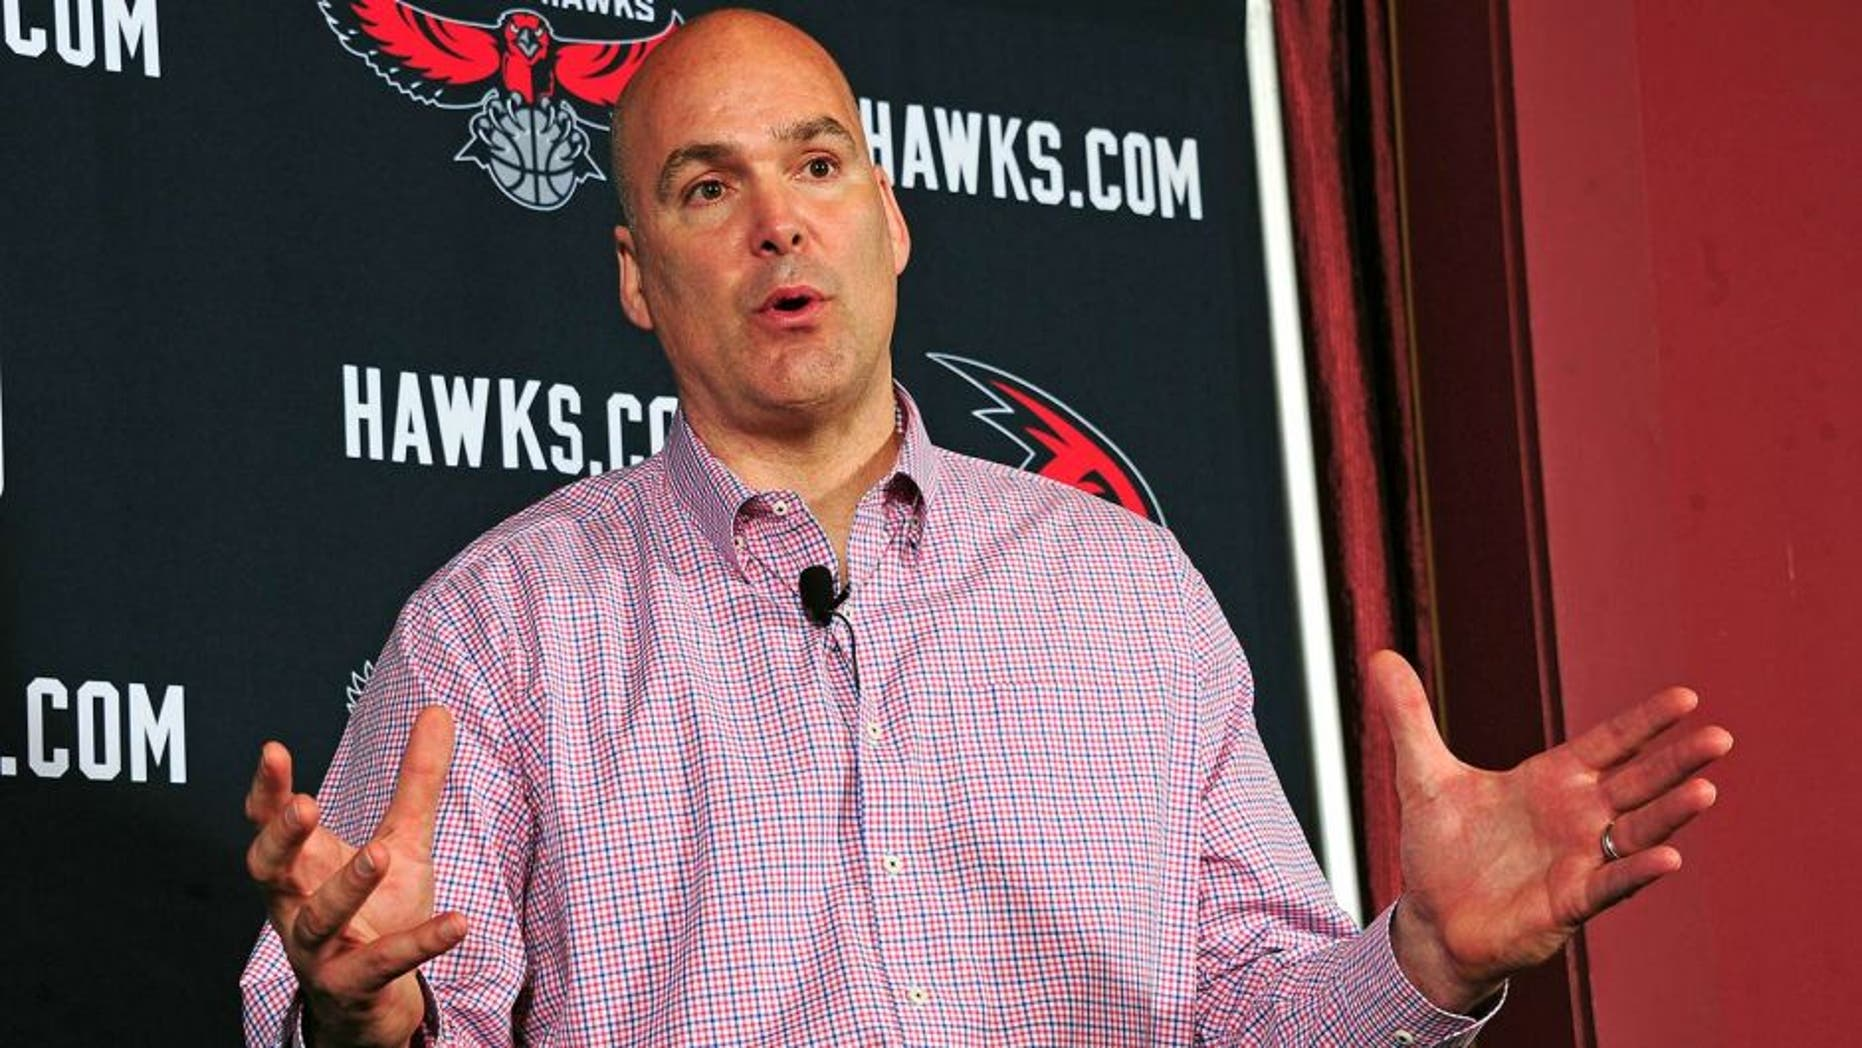 ATLANTA, GA - MAY 29: General Manager Danny Ferry speaks during the press conference introducing Mike Budenholzer as the new Head Coach of the Atlanta Hawks during a press conference on May 29, 2013 at Philips Arena in Atlanta, Georgia. NOTE TO USER: User expressly acknowledges and agrees that, by downloading and/or using this Photograph, user is consenting to the terms and conditions of the Getty Images License Agreement. Mandatory Copyright Notice: Copyright 2013 NBAE (Photo by Scott Cunningham/NBAE via Getty Images)